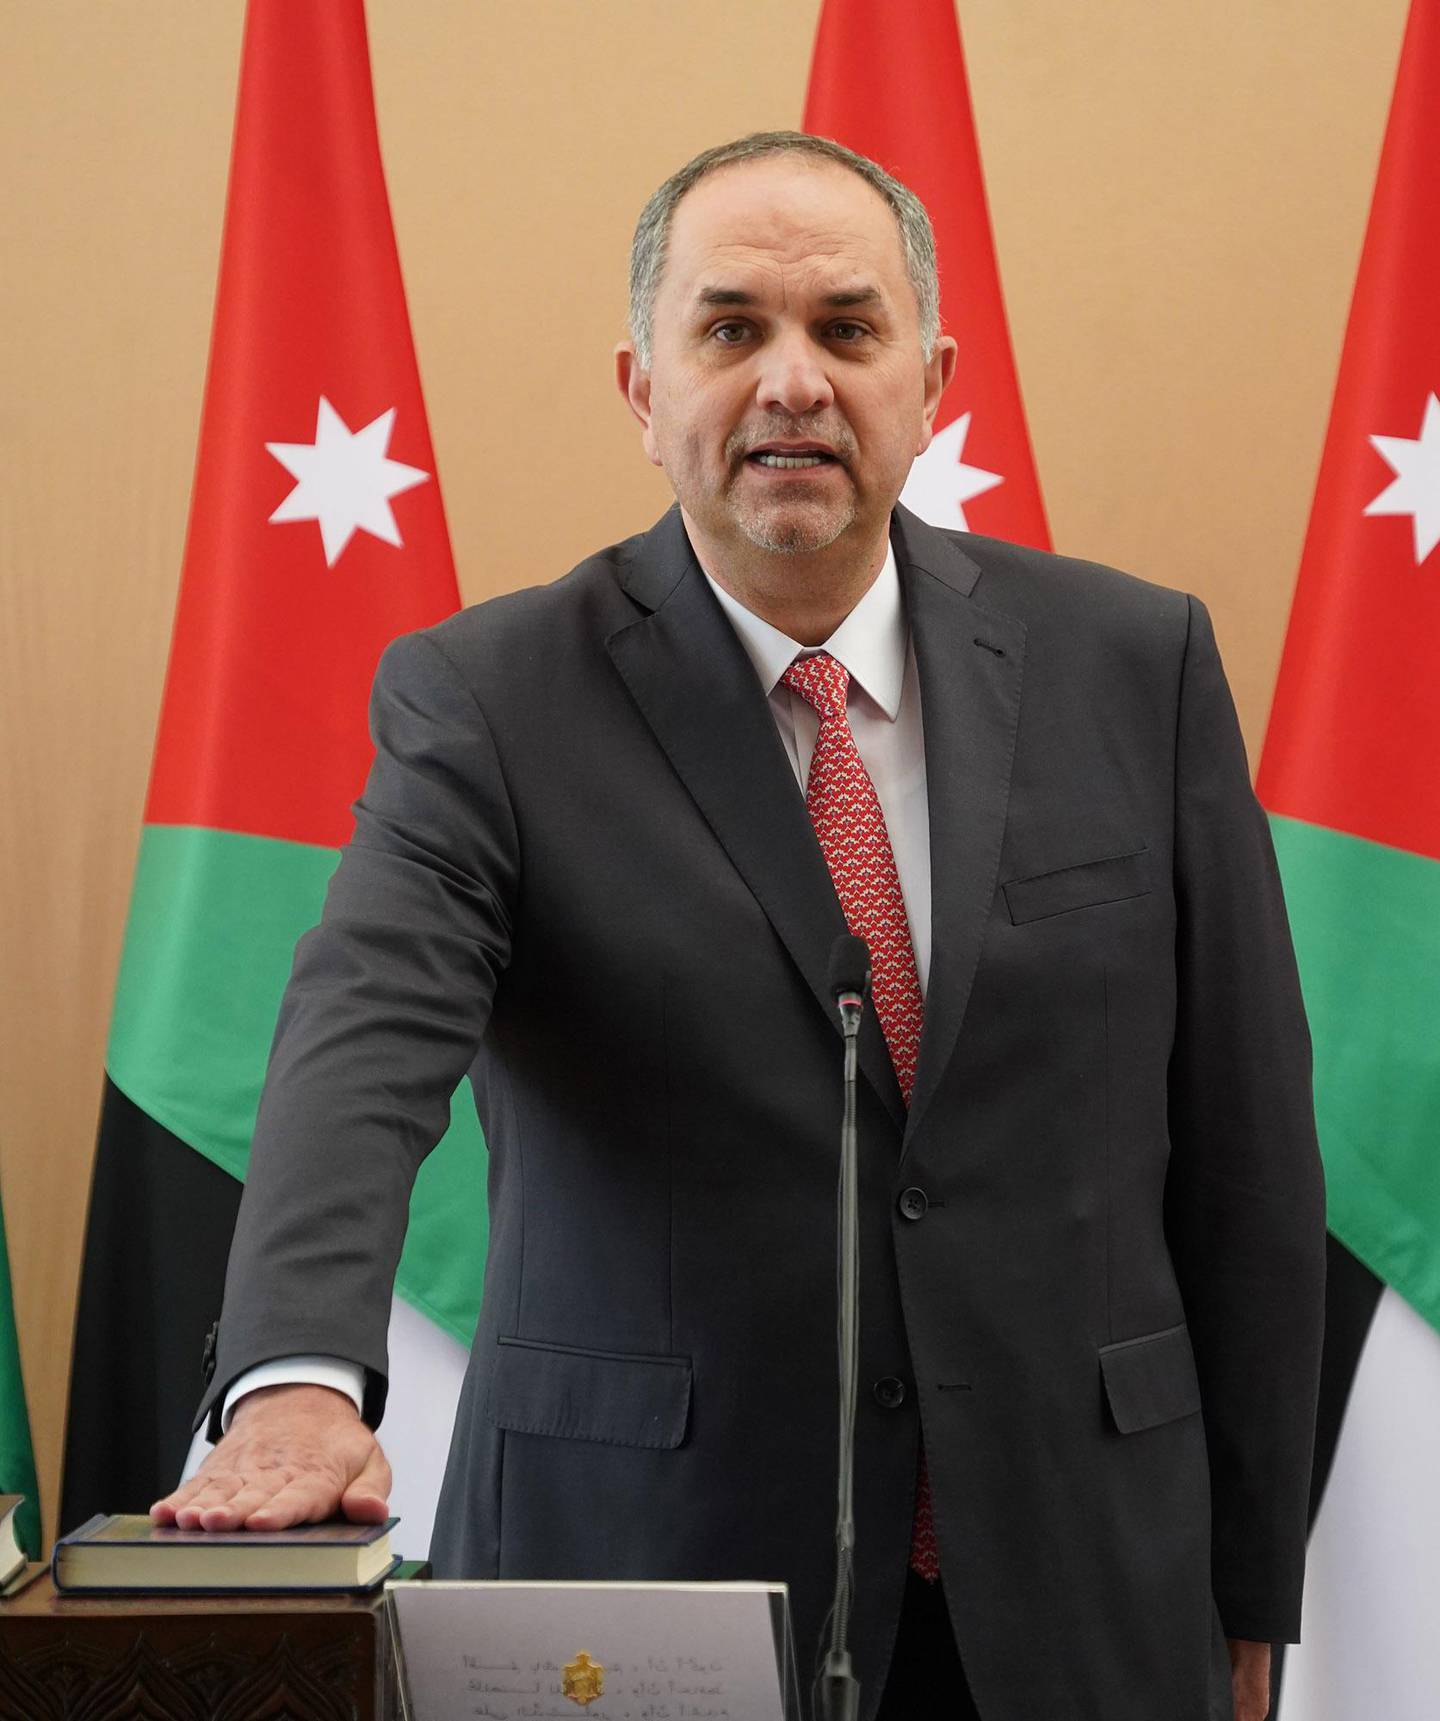 King Abdullah II swears in Bassam Talhouni swears in as Minister of Justice at Al Husseiniya Palace on October 12, 2020. Courtesy Royal Hashemite Court